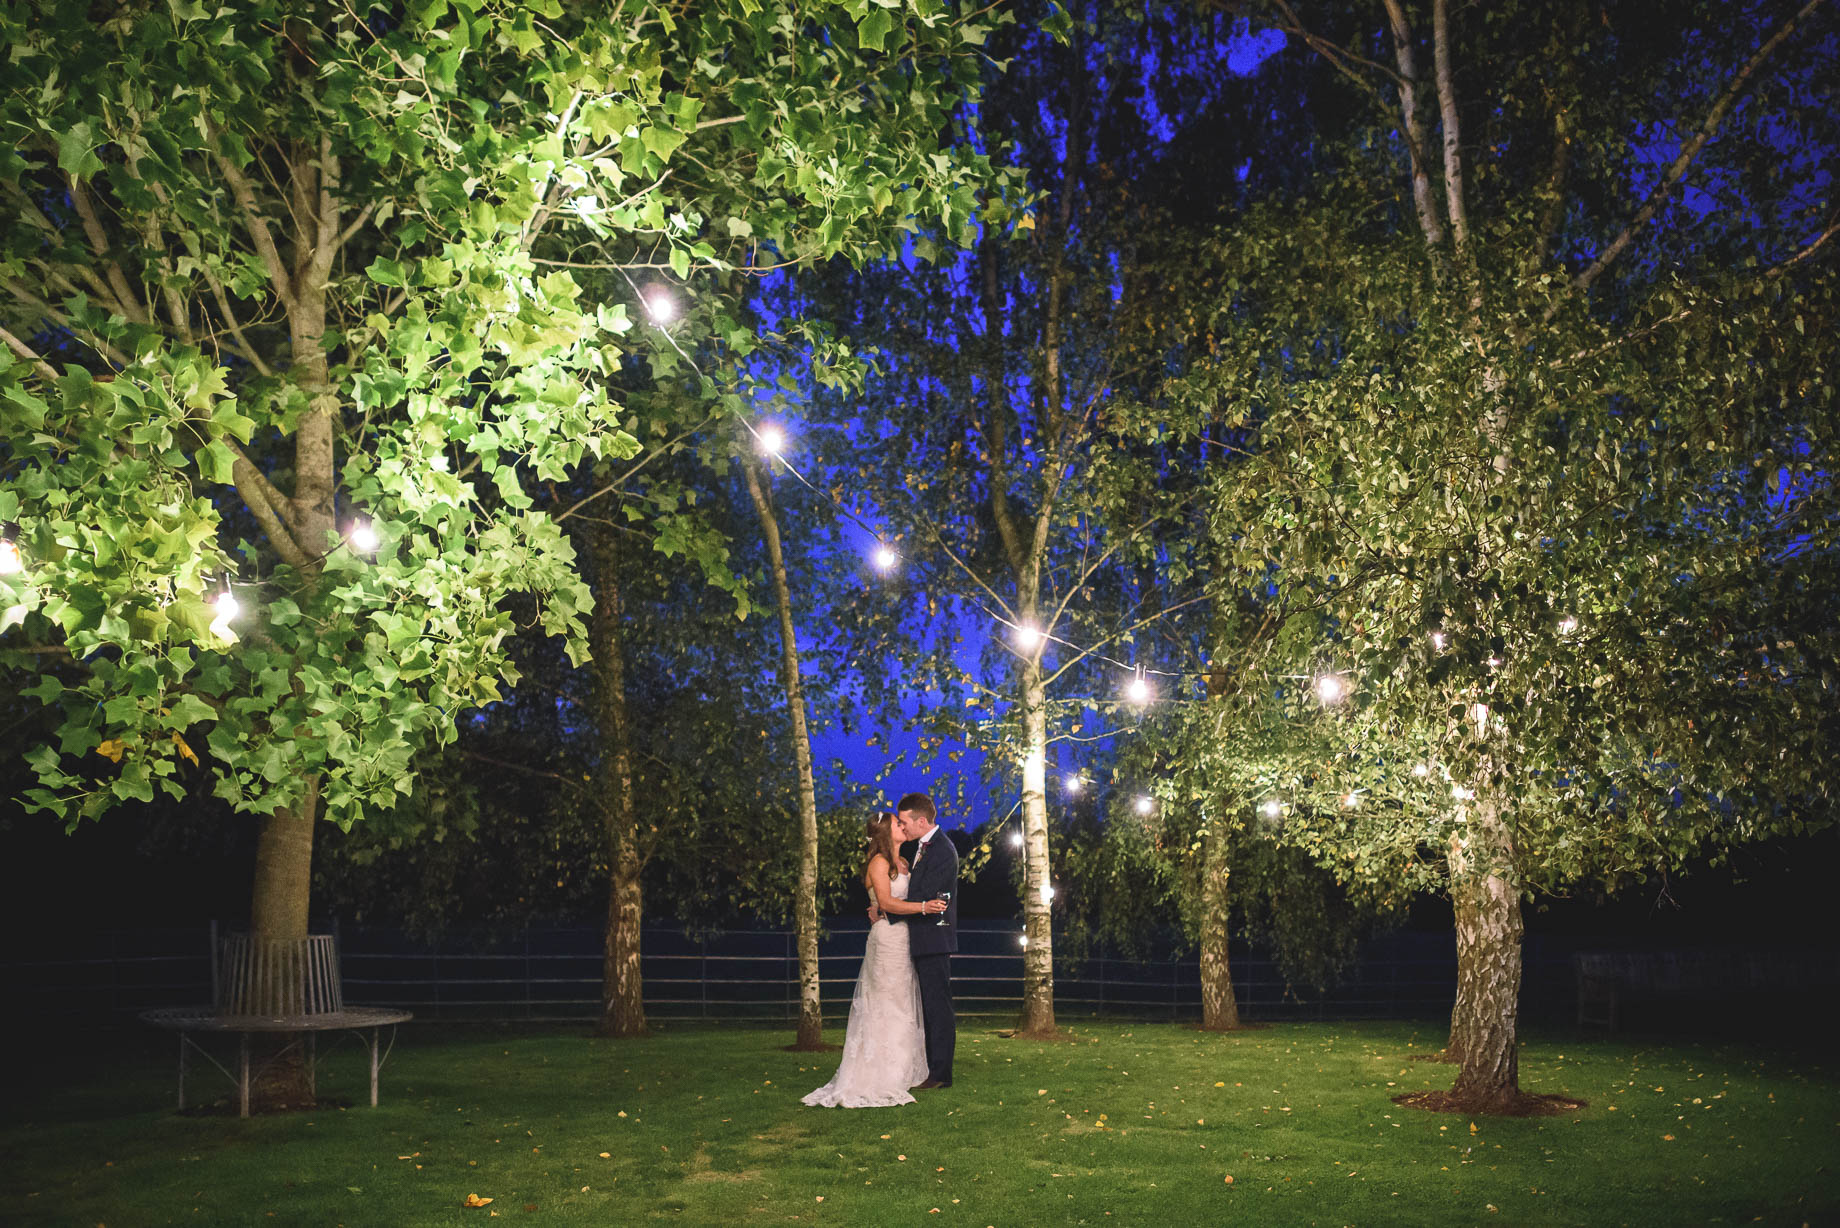 Gate Street Barn wedding photography - Guy Collier - Claire and Andy (171 of 192)